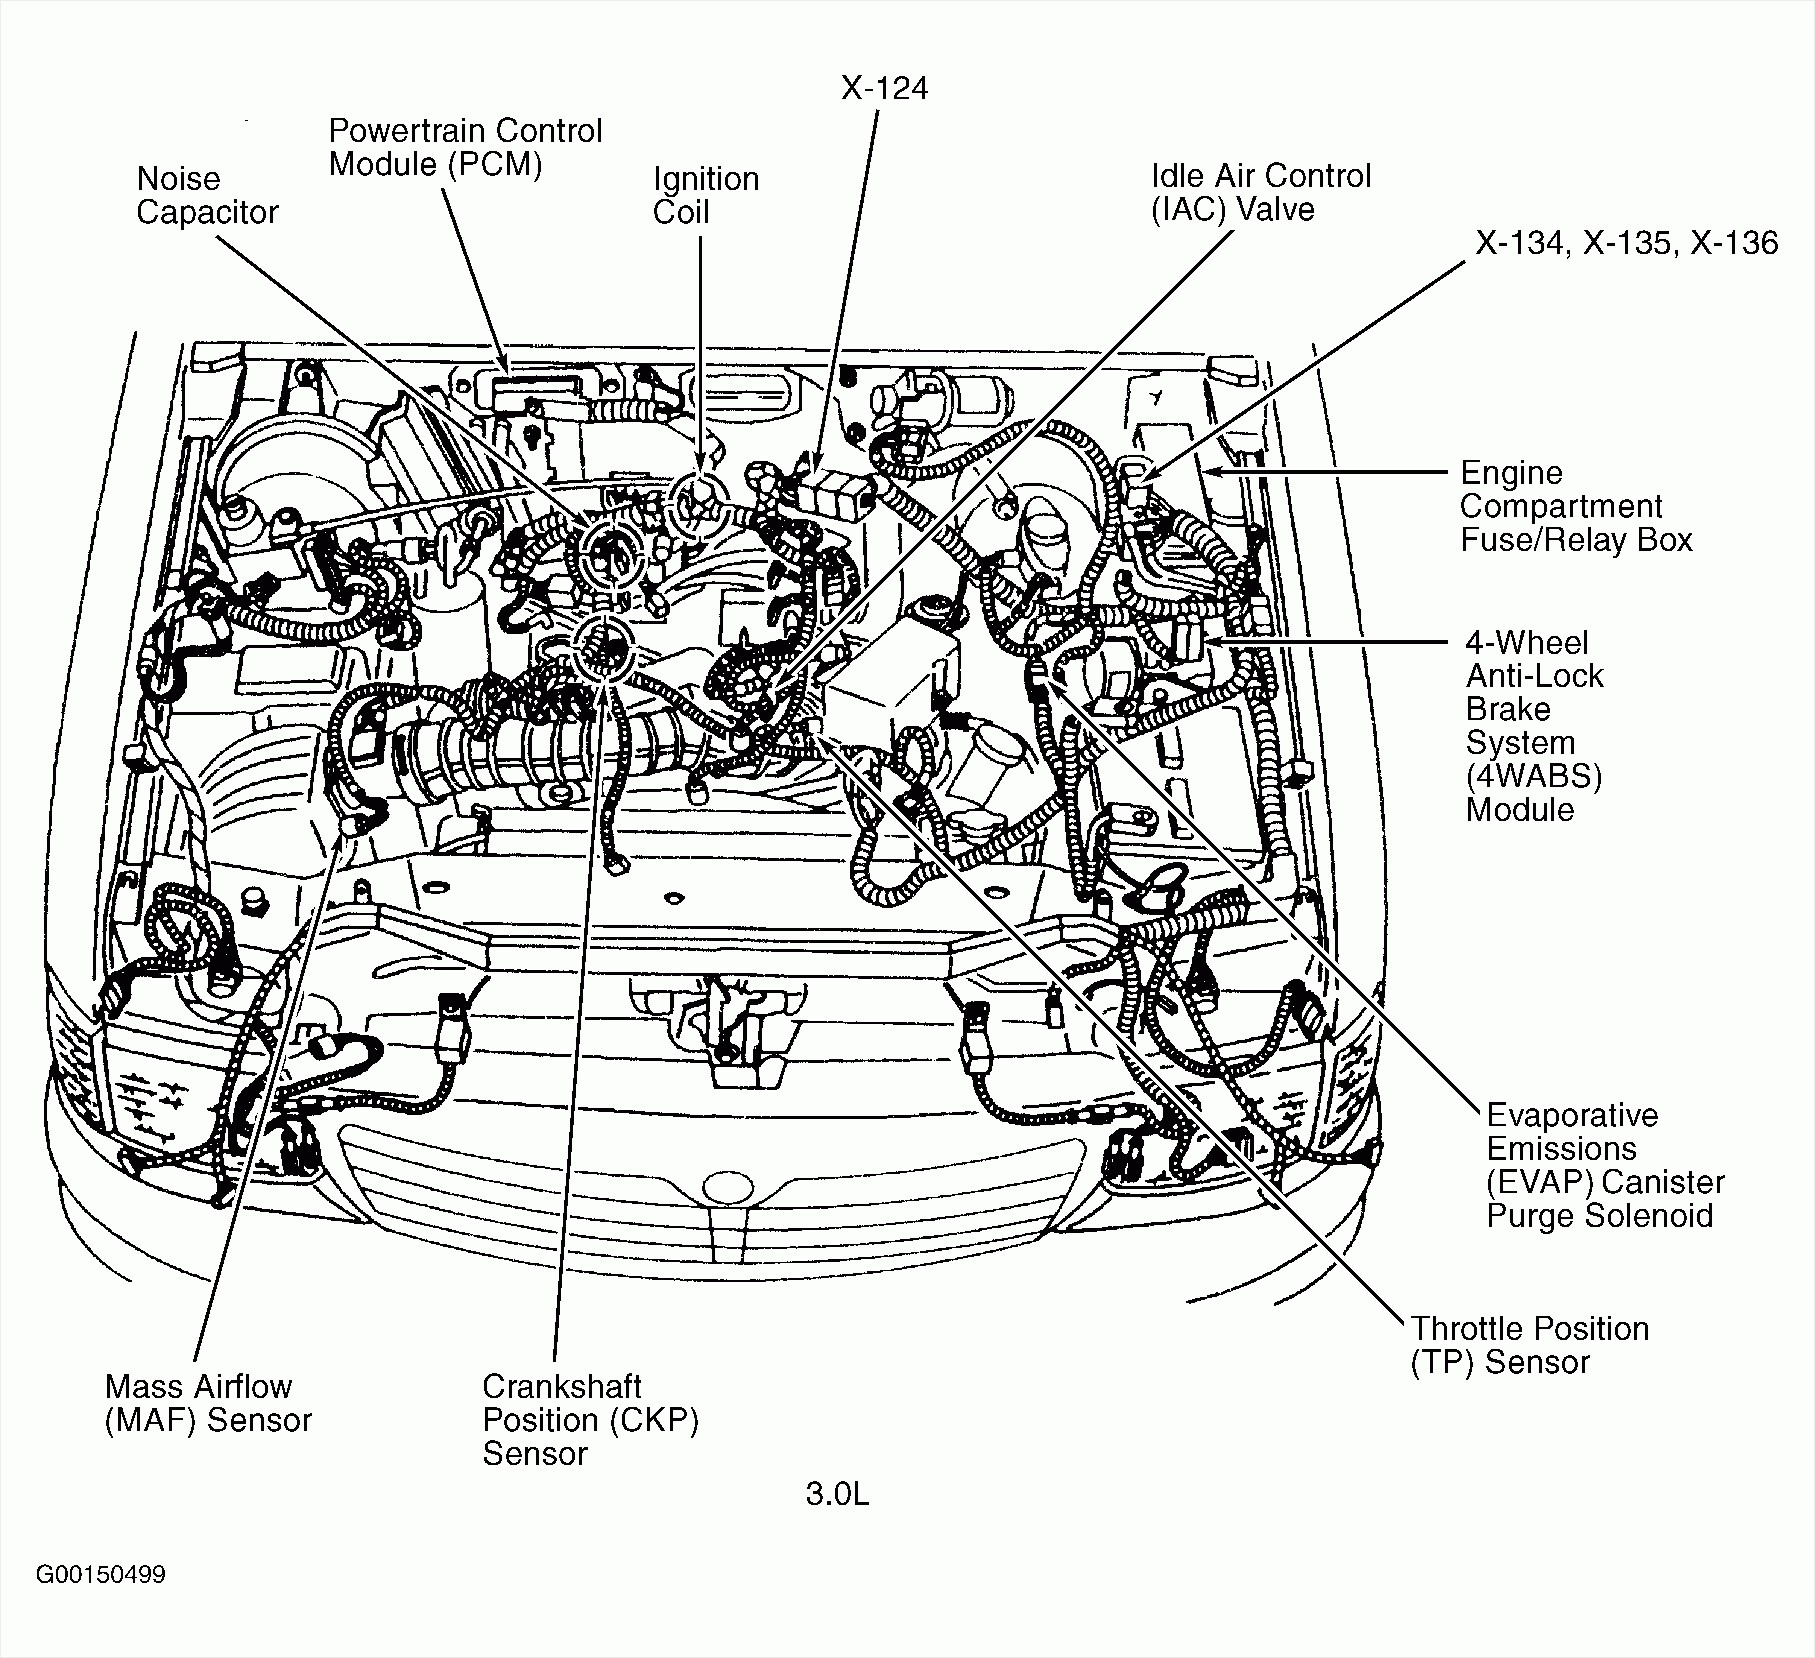 3800 engine diagram intake schematic diagram3800 engine diagram intake wiring library chevy 3800 engine diagram 3800 engine diagram intake